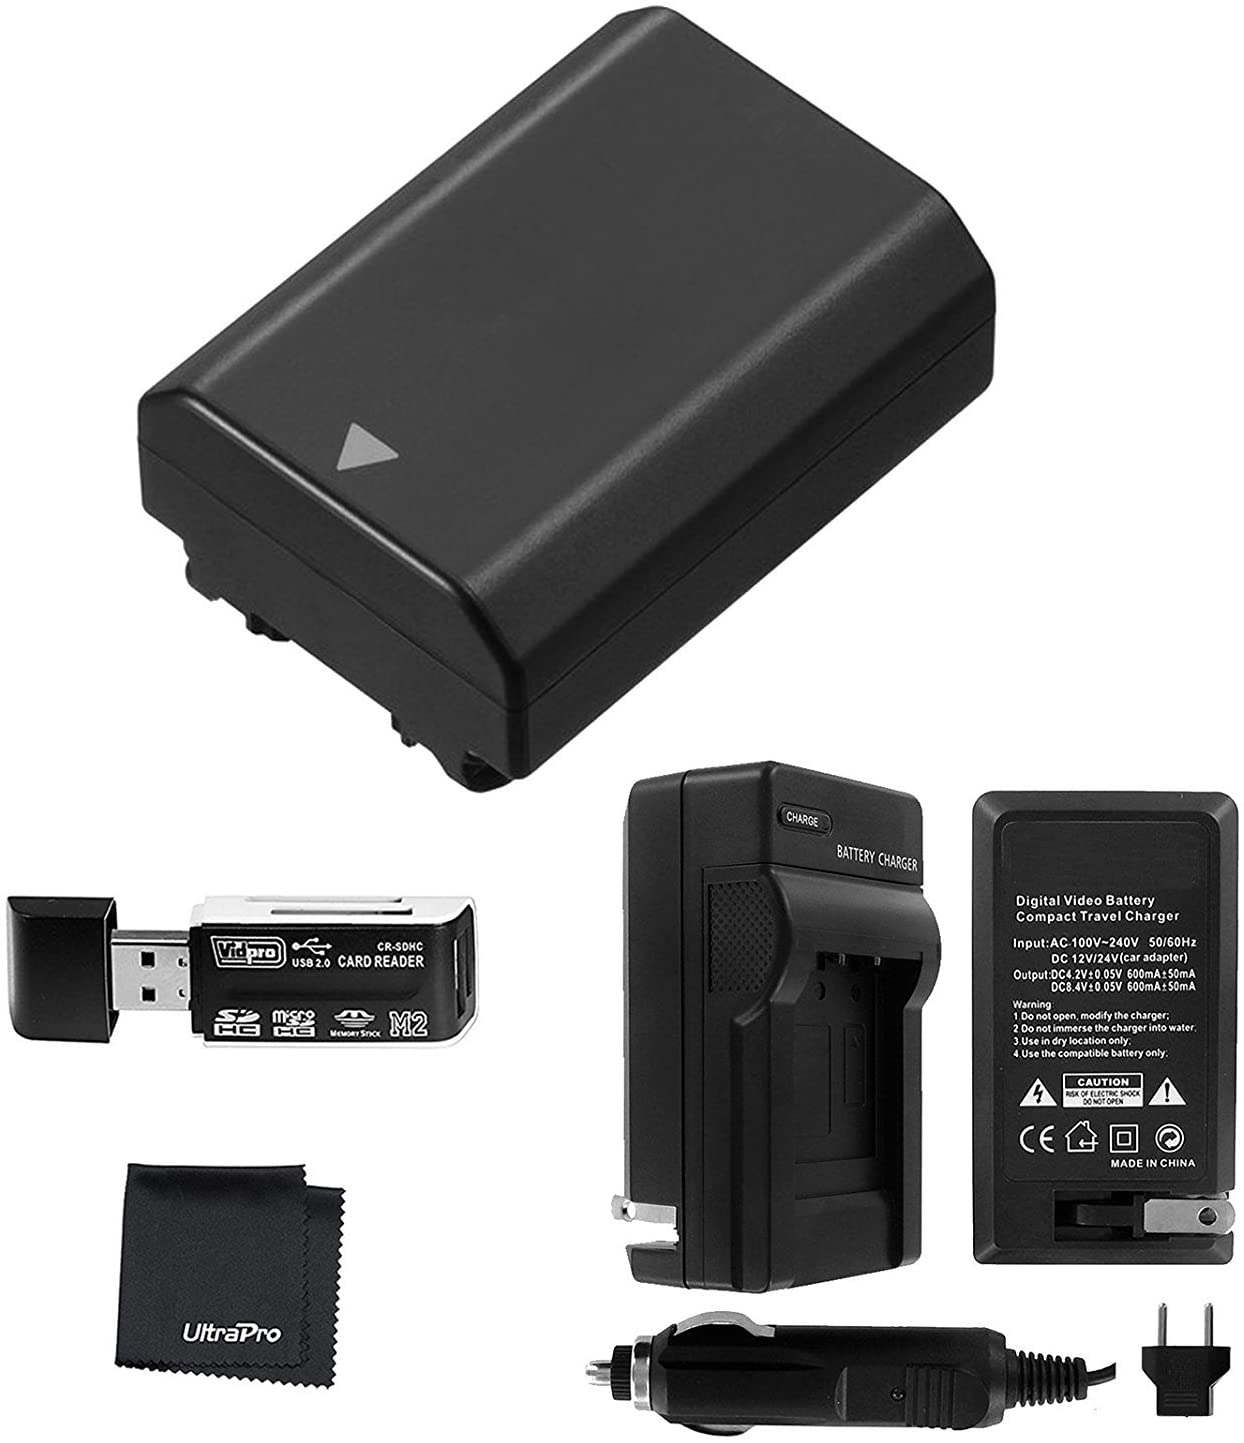 UltraPro NP-FZ100 Replacement Battery with Charger Bundle for Sony NP-FZ100, BC-QZ1 and Sony Alpha 9, Sony A9, Sony Alpha 9R, Sony A9R, Sony Alpha 9S, Sony A7RIII A7R3, Sony a7 III Digital Camera